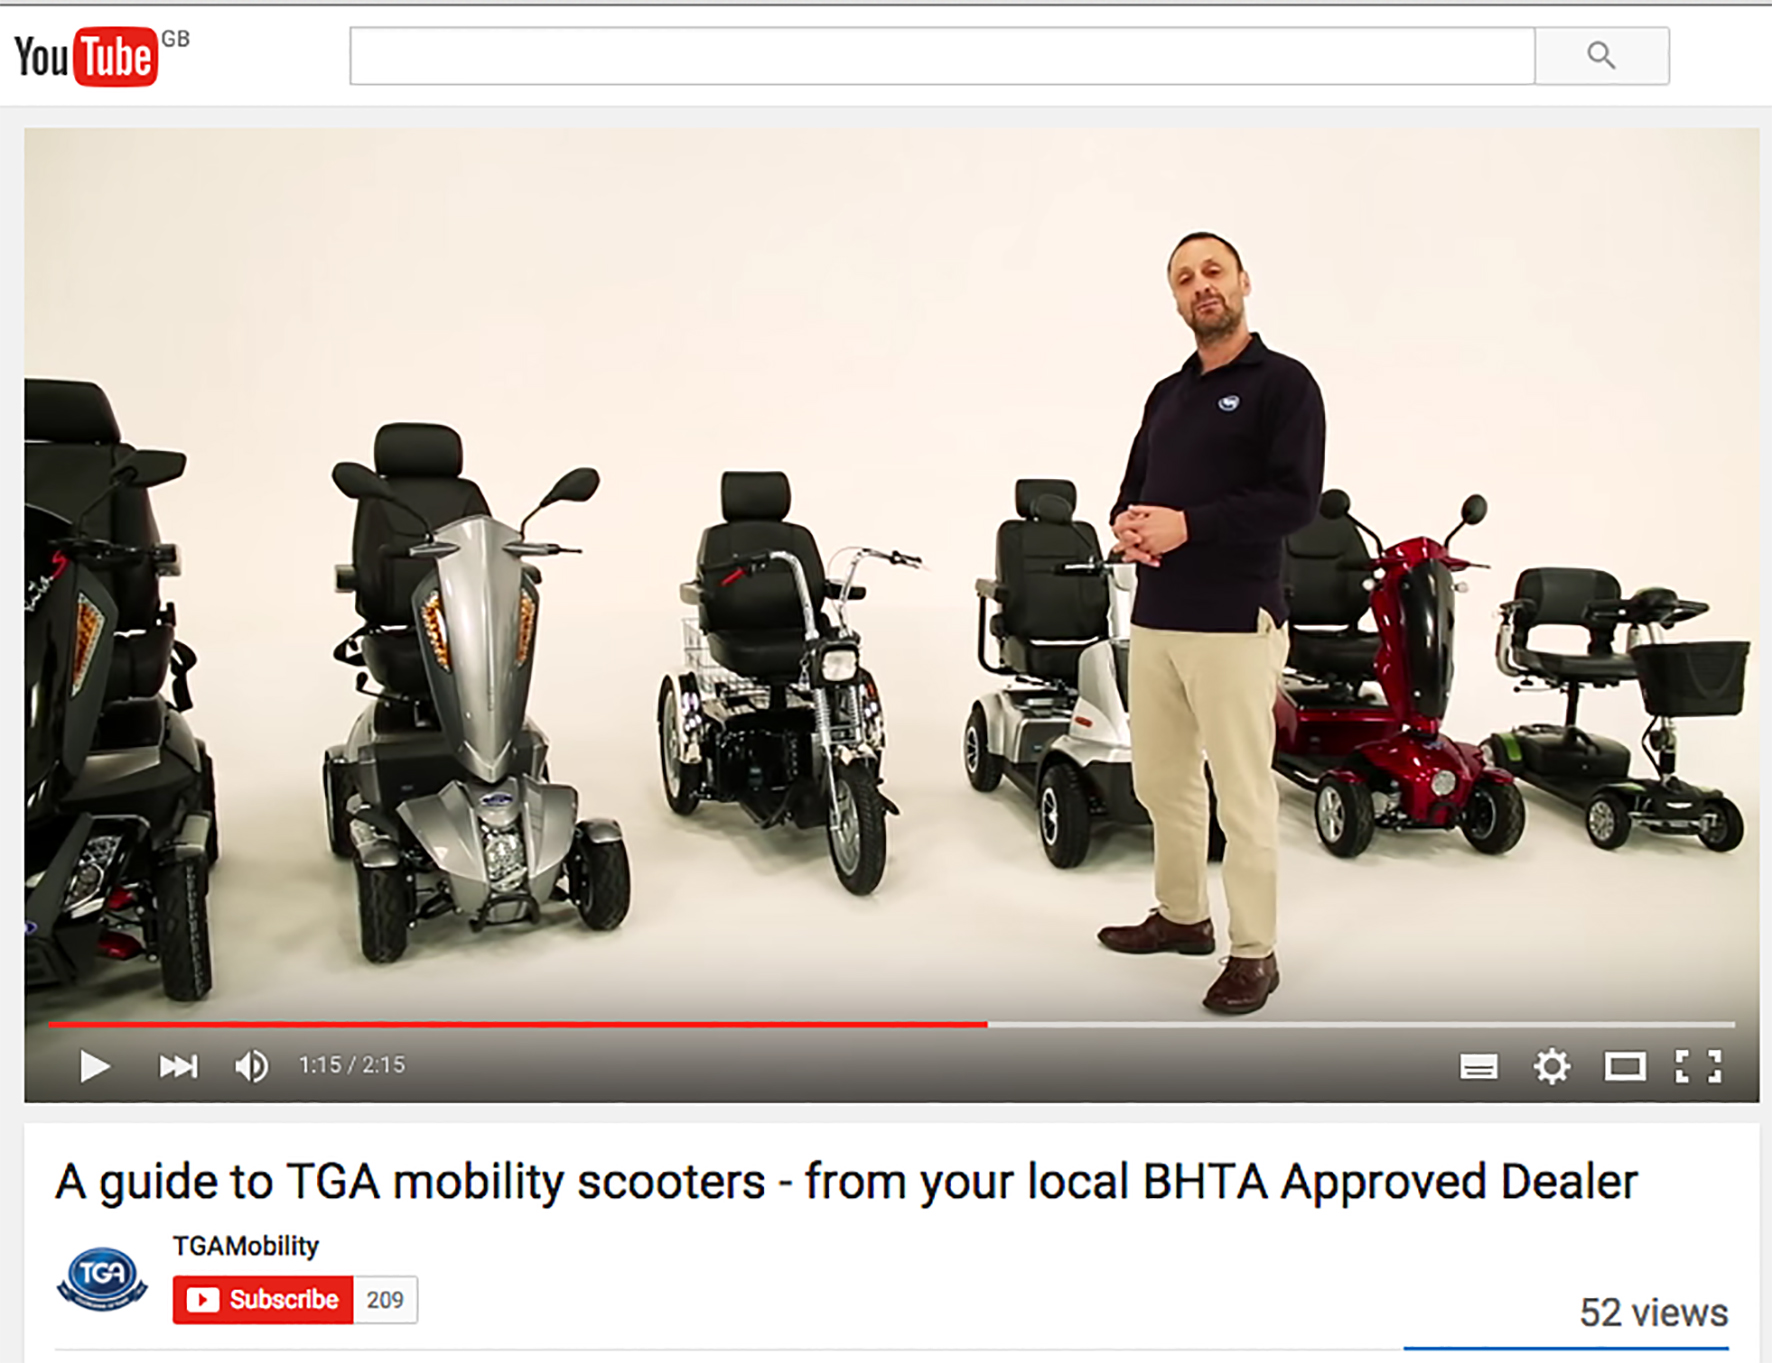 NEW TGA MOBILITY SCOOTER RANGE VIDEO LAUNCHED TO ASSIST RETAILERS AND PROMOTE BHTA